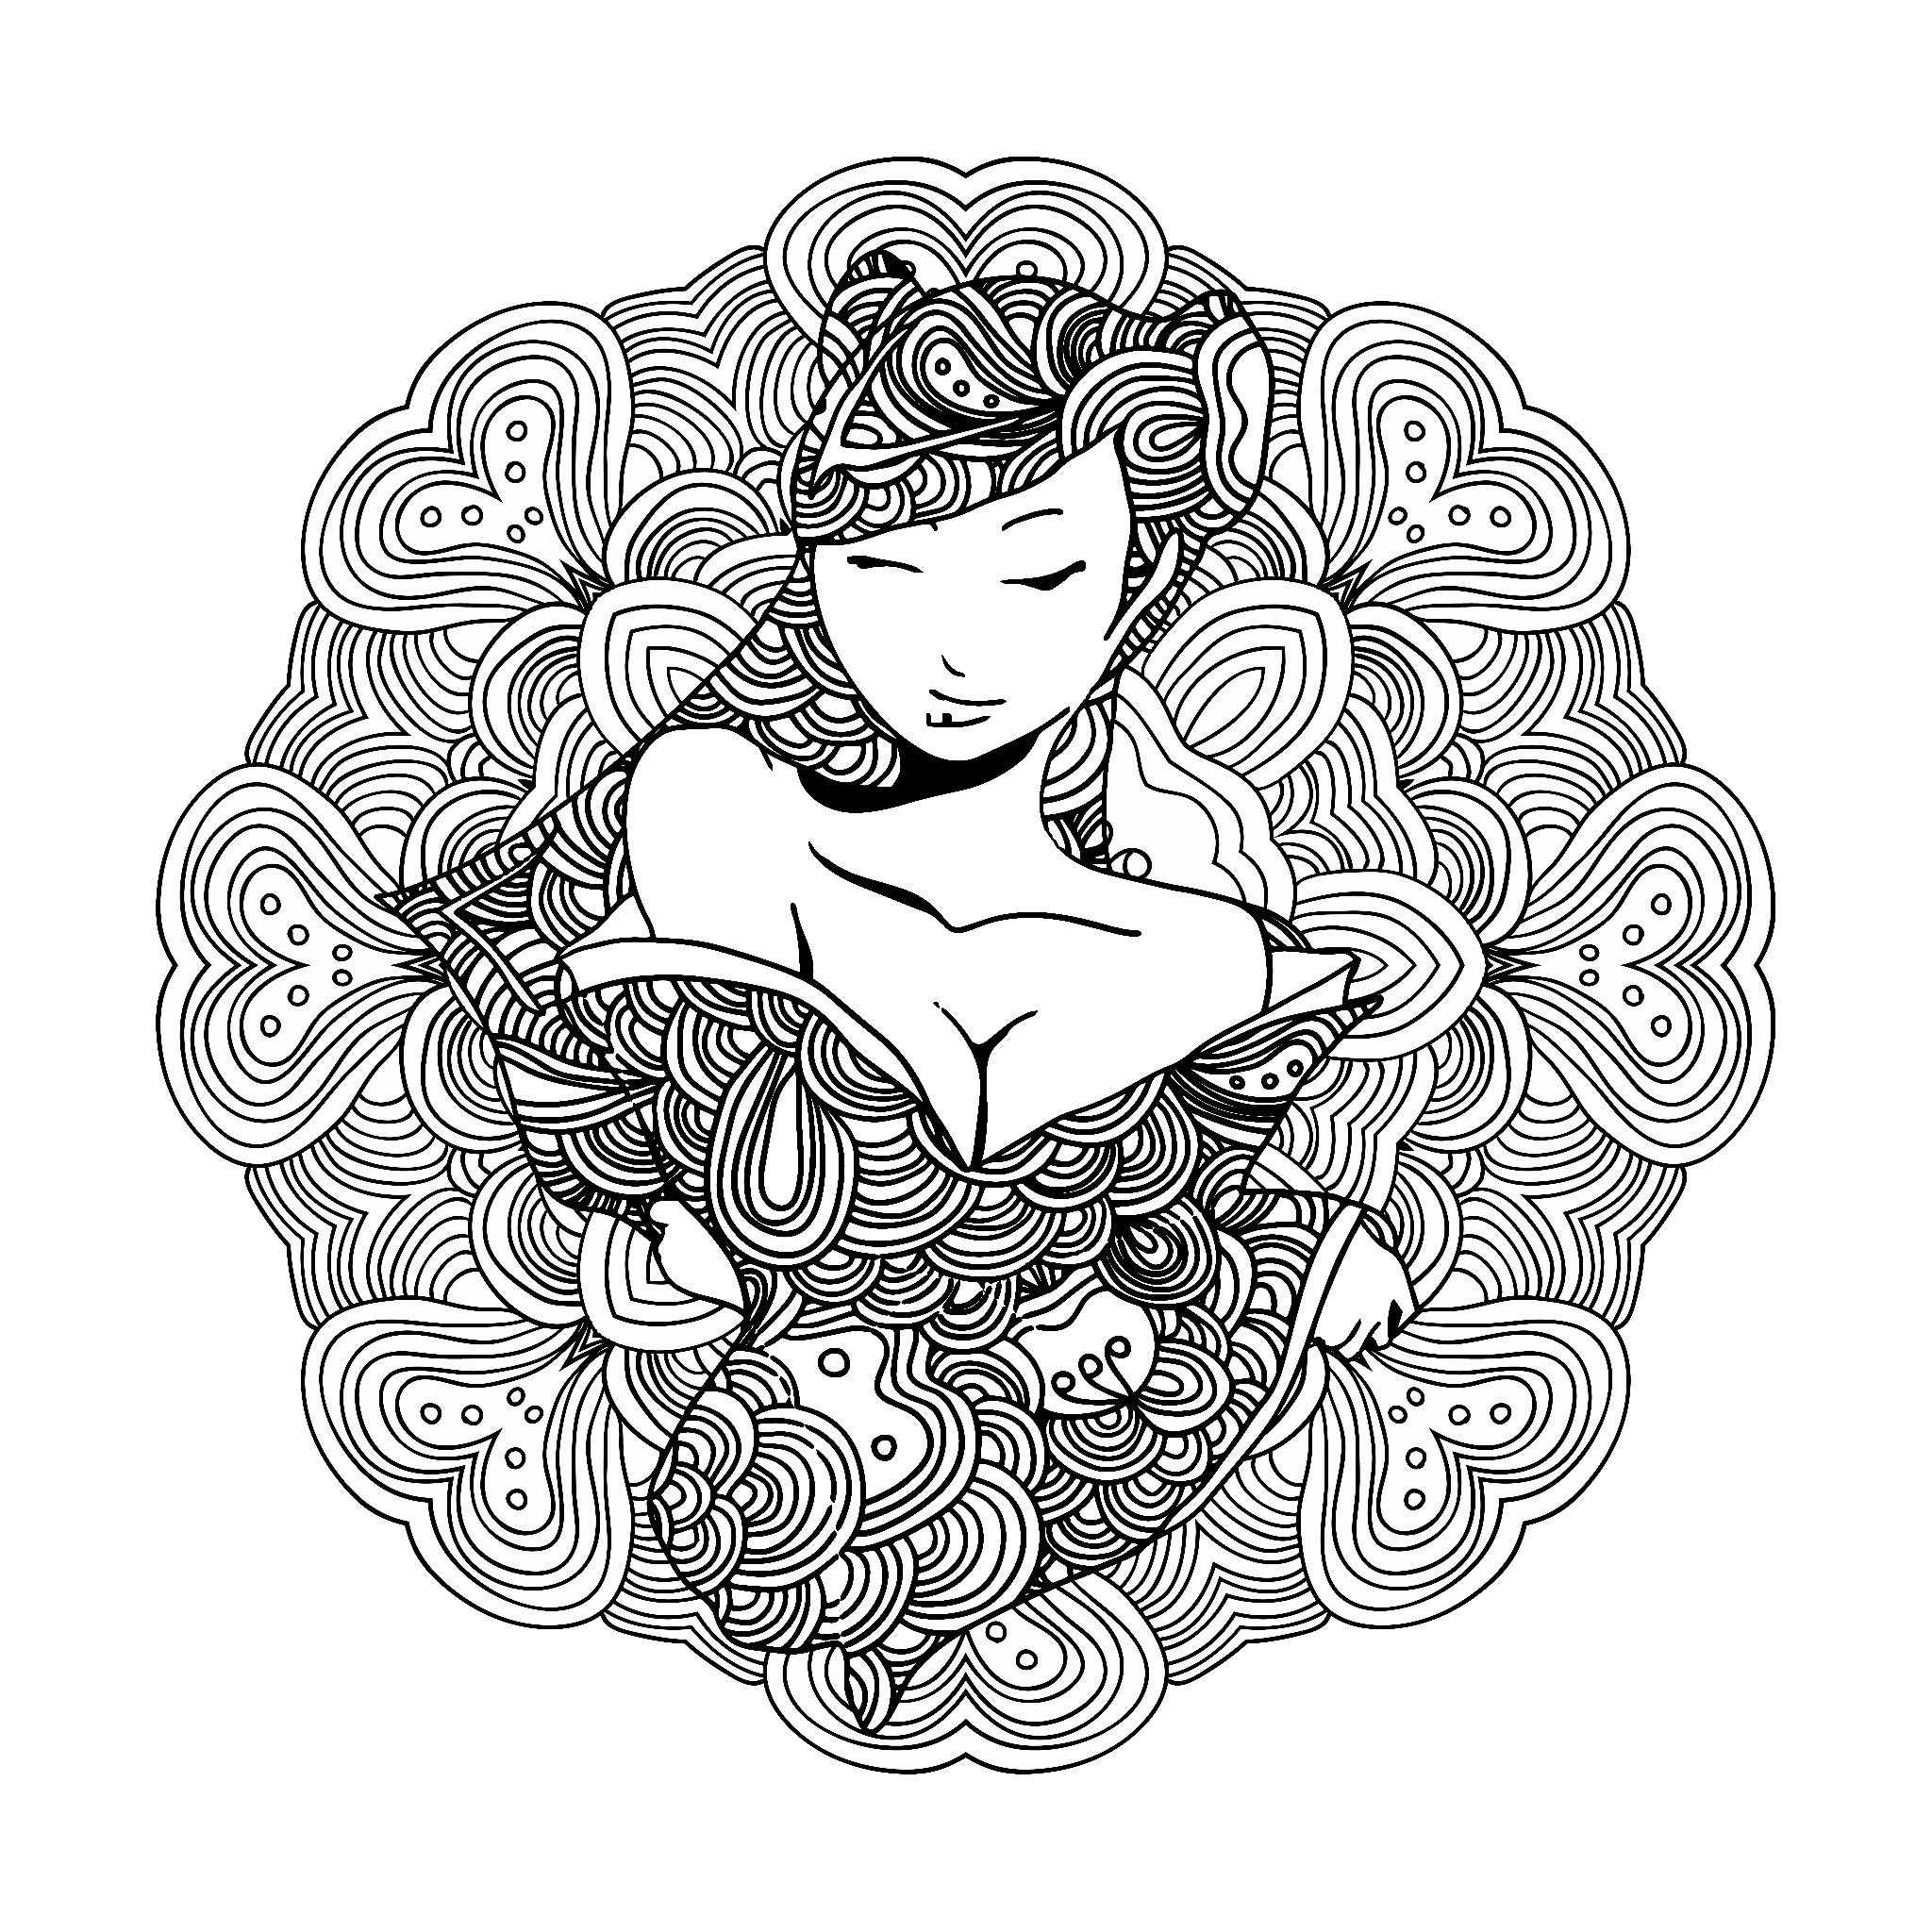 Stylized Vector Illustration Of A Beautiful Geisha Girl Can Be Used As Adult Coloring Book Page Card Mandala